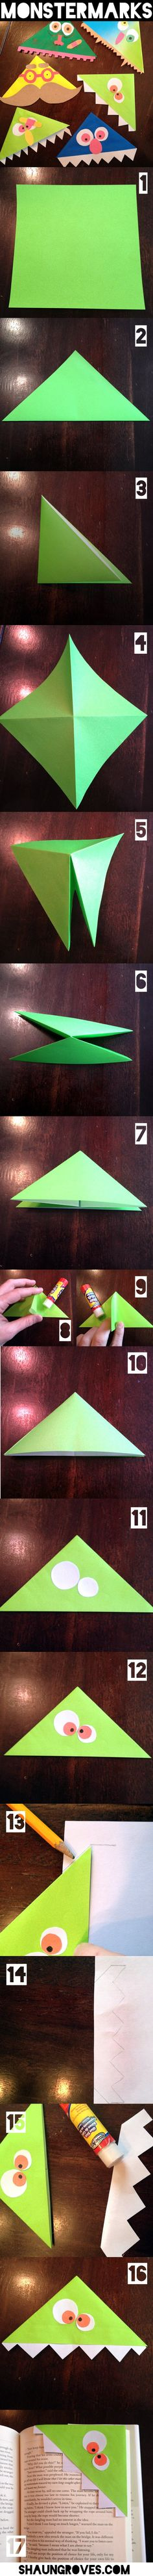 Simple directions to make a monster themed bookmark. Easy craft for kids.